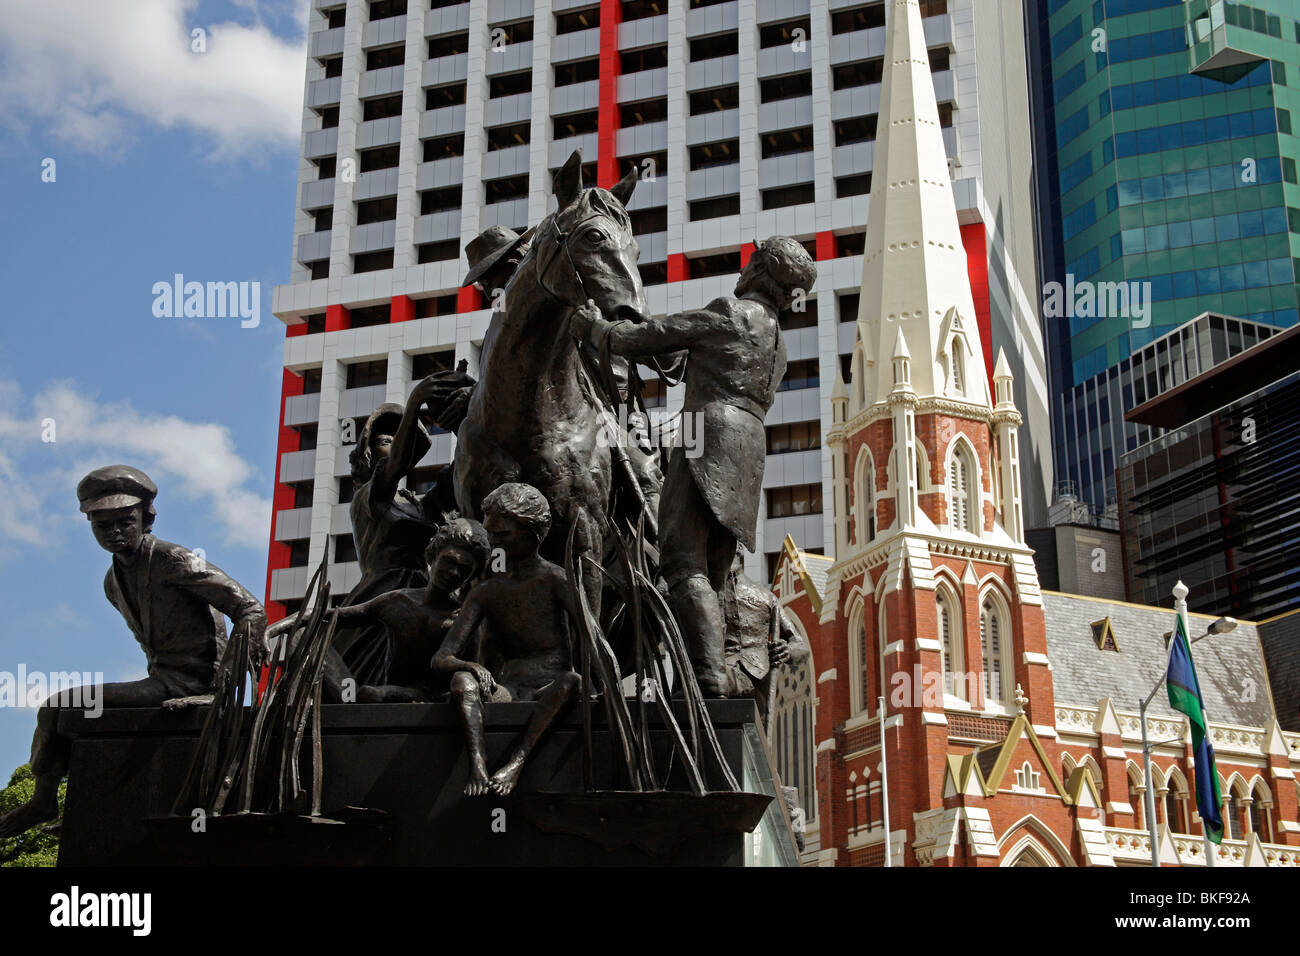 Monument The Petrie Tableau on King George Square and Albert Street Uniting Church in Brisbane, Queensland, Australia - Stock Image